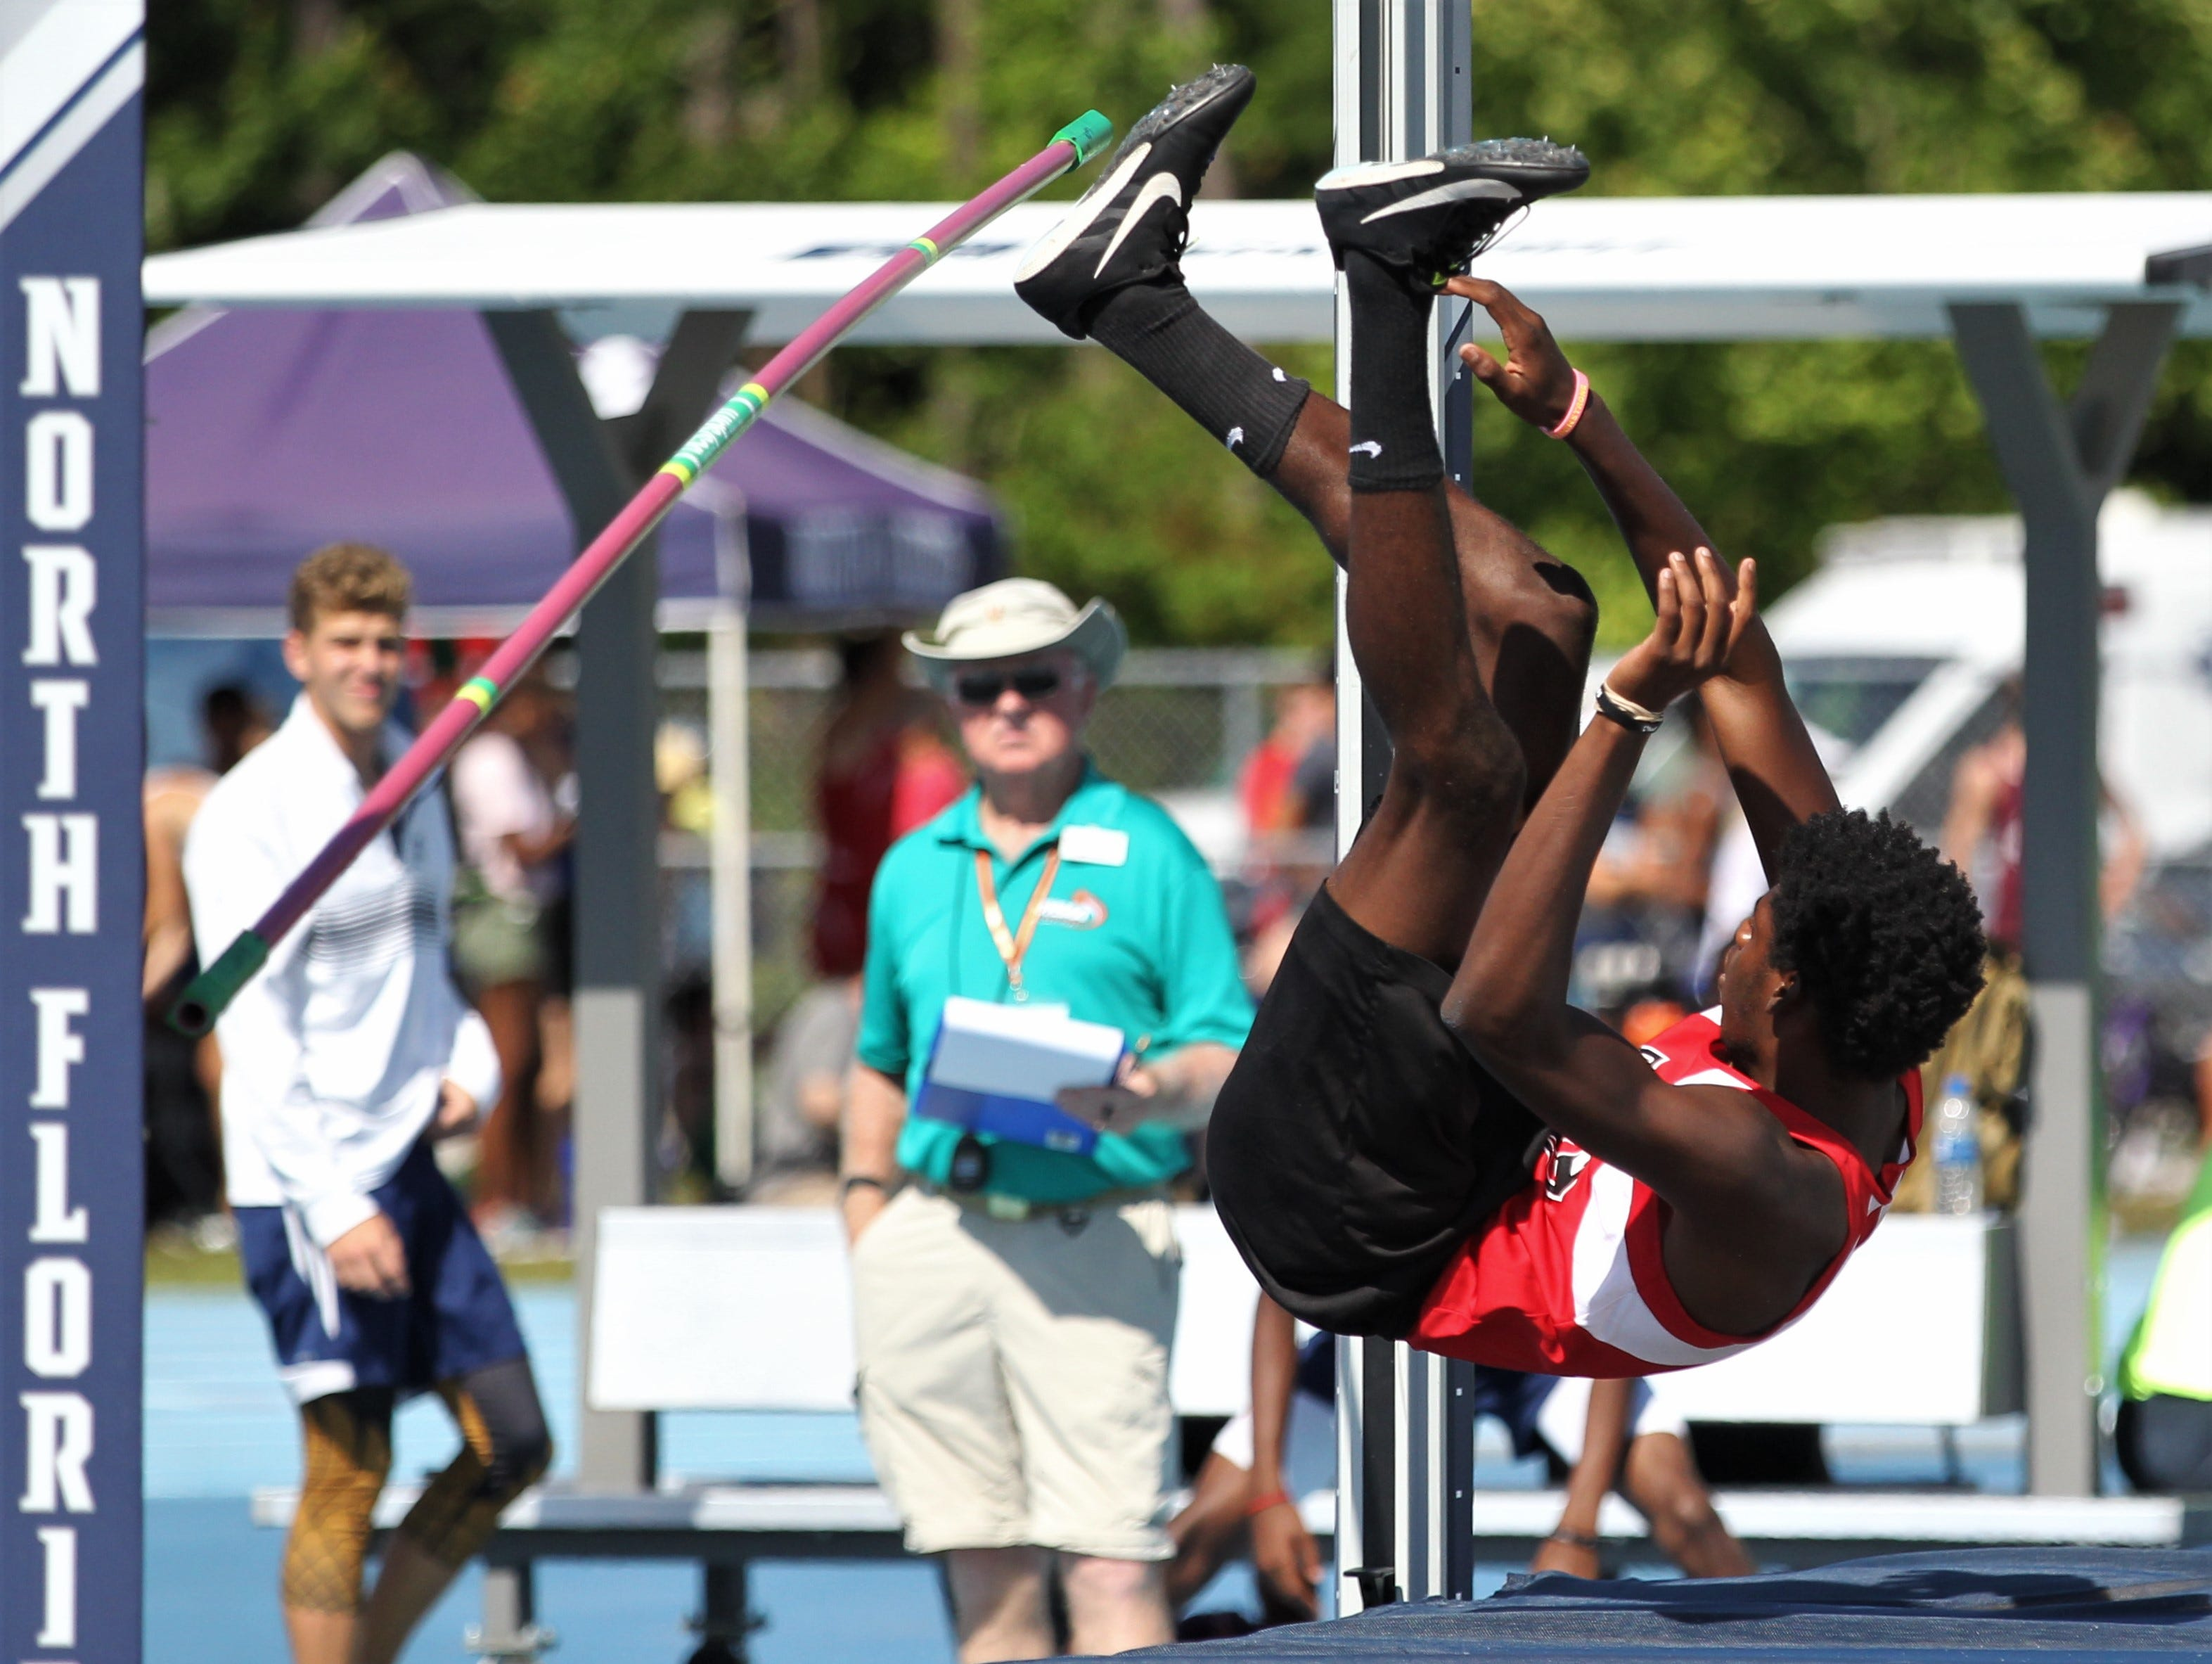 NFC senior Tredarious Langston clips the bar on high jump during the FHSAA Track and Field State Championships at UNF's Hodges Stadium in Jacksonville on May 4, 2019.